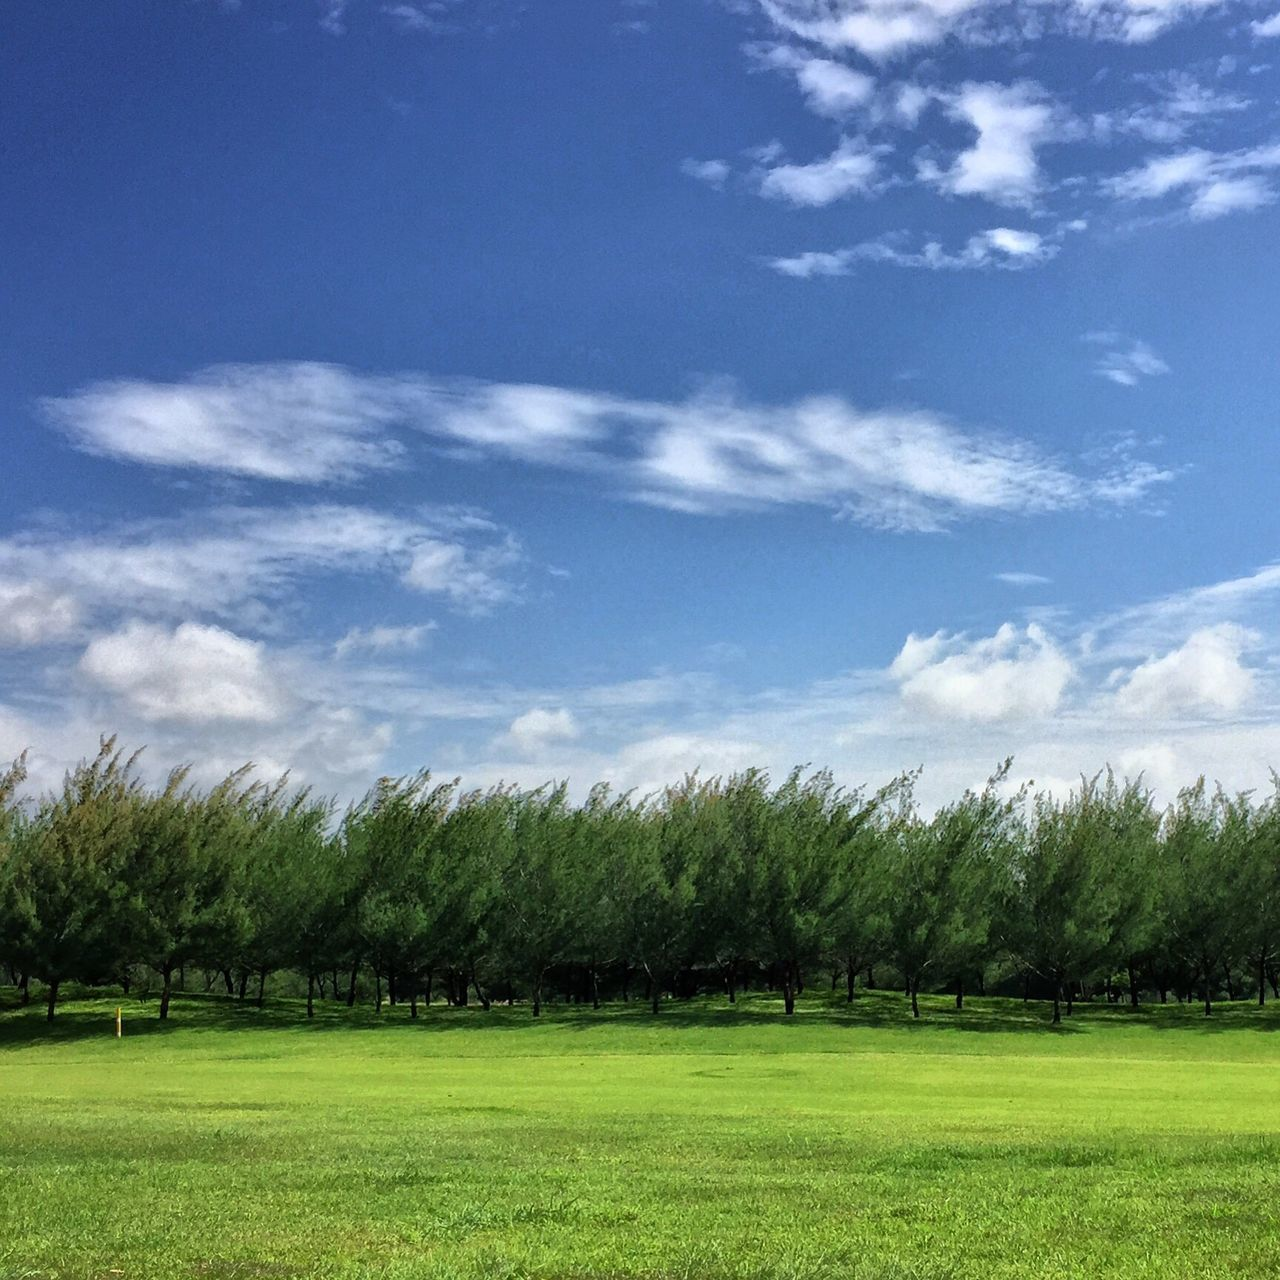 Landscape_Collection Greenery EyeEm Nature Lover EyeEm Best Shots Treescollection Treescape Treeskycloud